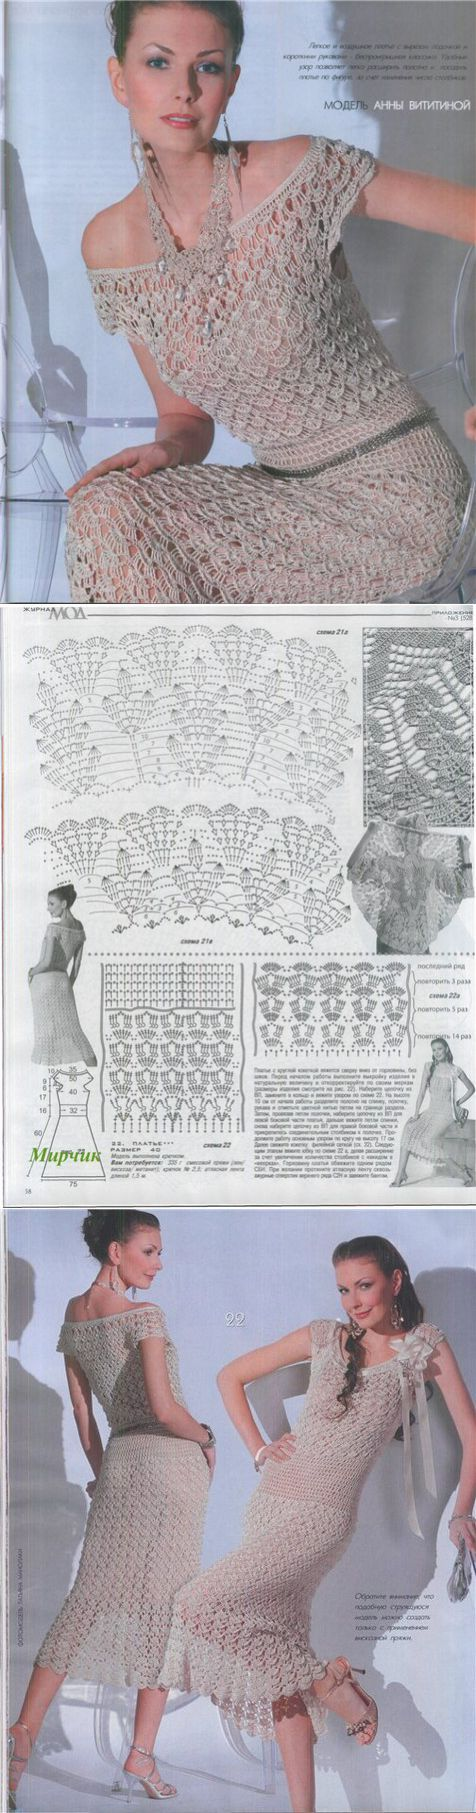 The pattern graph can be reinterpreted into feathers ... vk.com